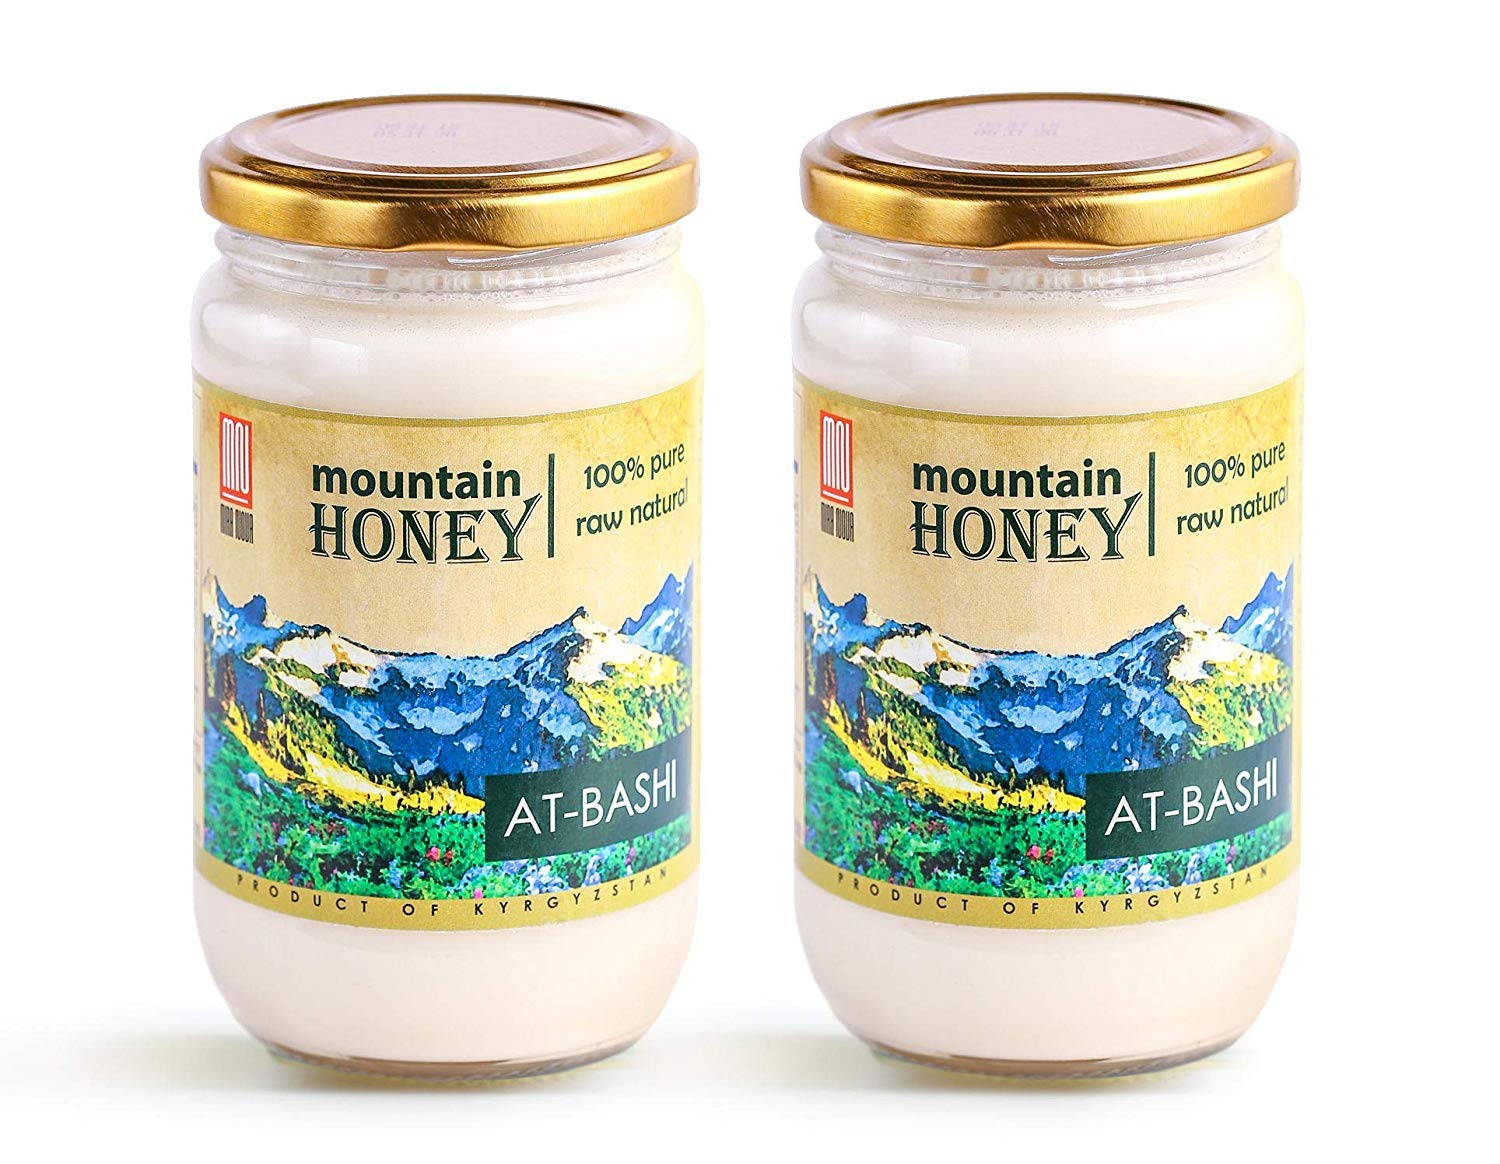 Raw White Honey; Natural Organic Creamed Wildflower Mountain Honey from Central Asia – Unheated & Unfiltered - Contains Natural Enzymes, Pollen & Propolis – by Mira Nova (2-PACK)